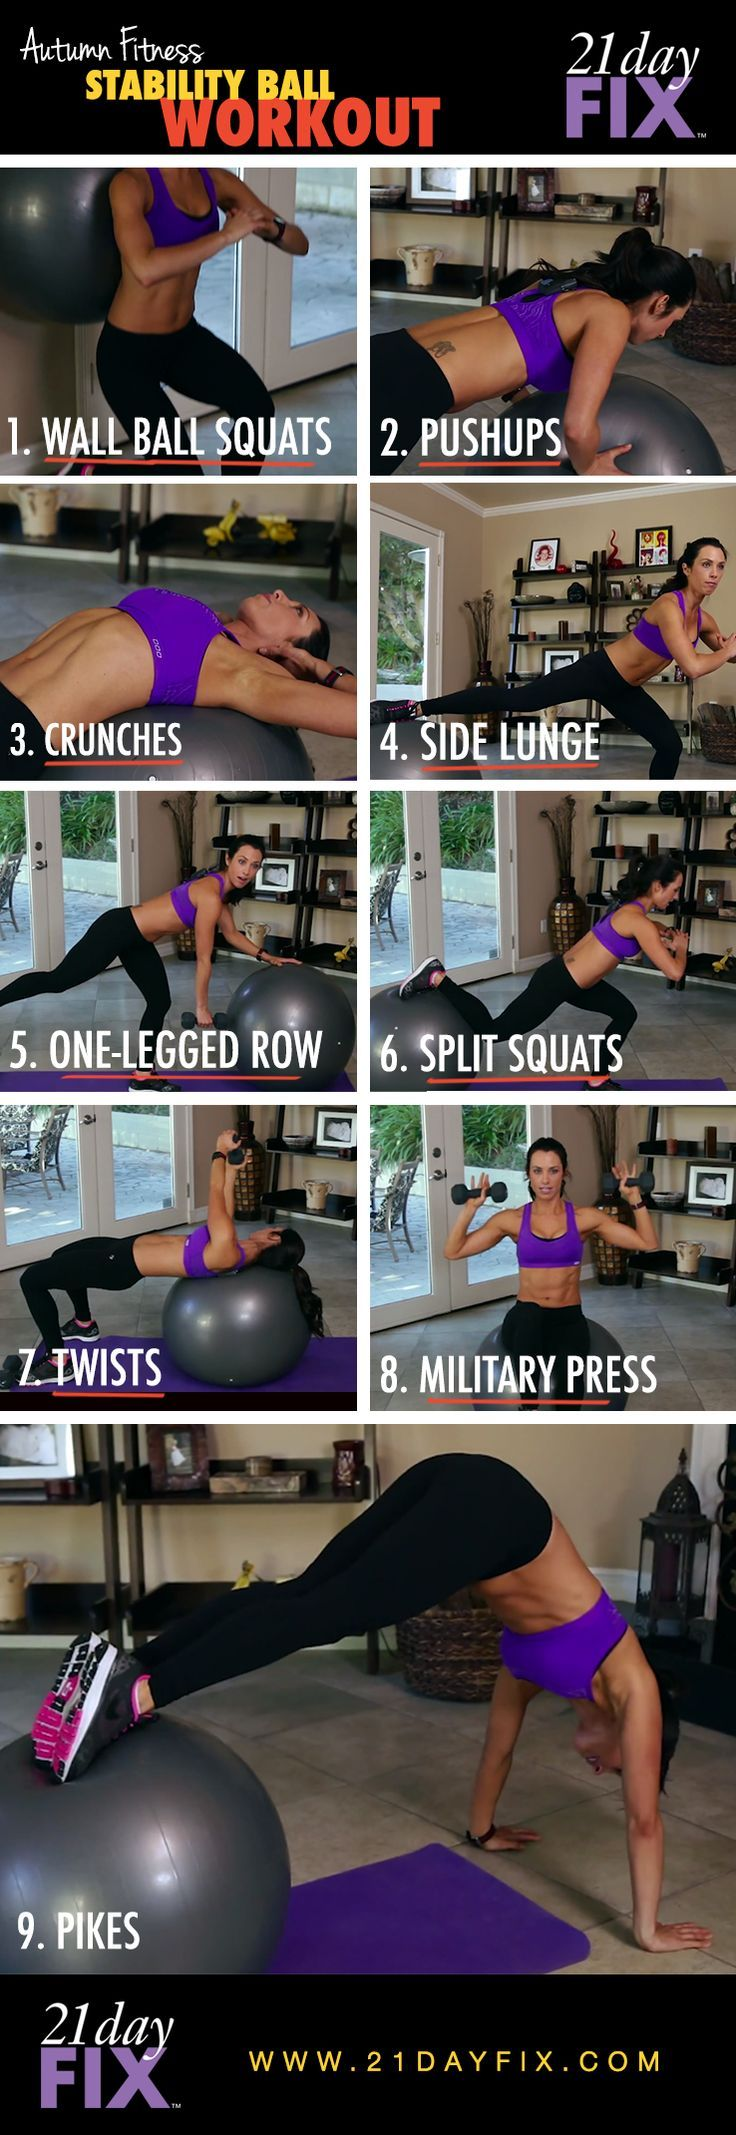 Challenge yourself with Stability ball exercises!